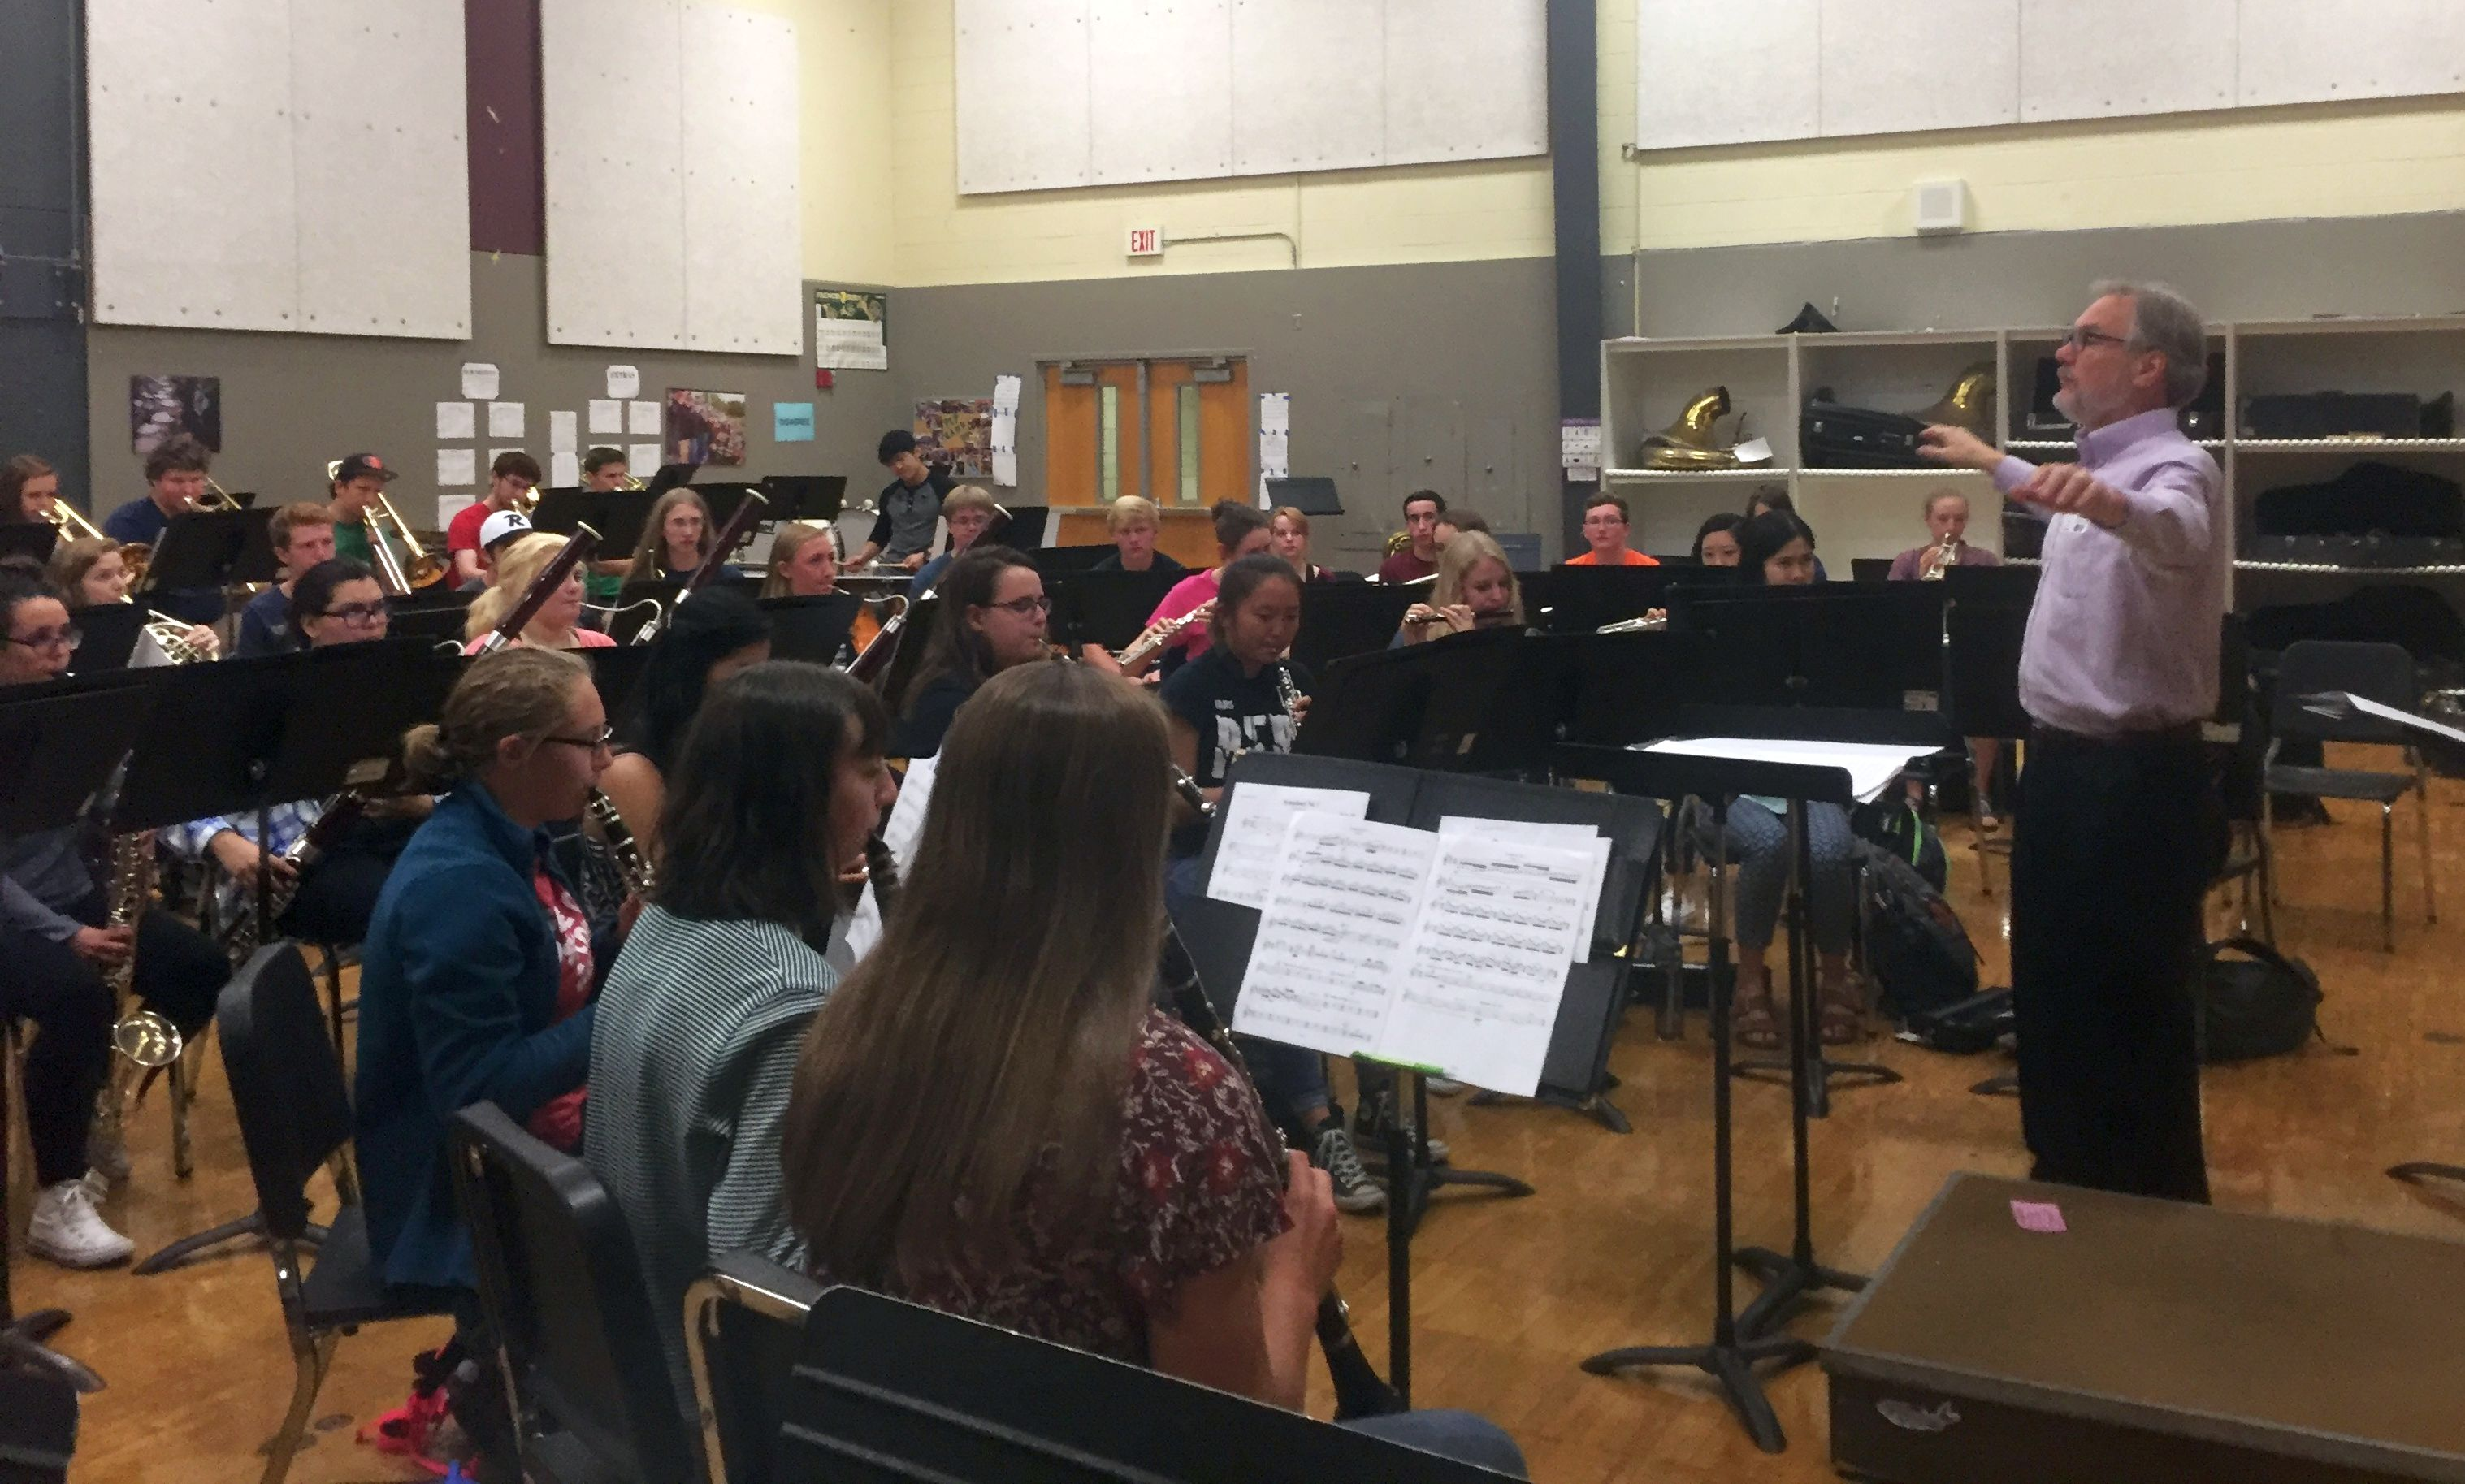 Timothy Mahr conducted the Roseville Area High School band in a rehearsal of his Symphony No. 1. (Photo by Matt Dehnel)